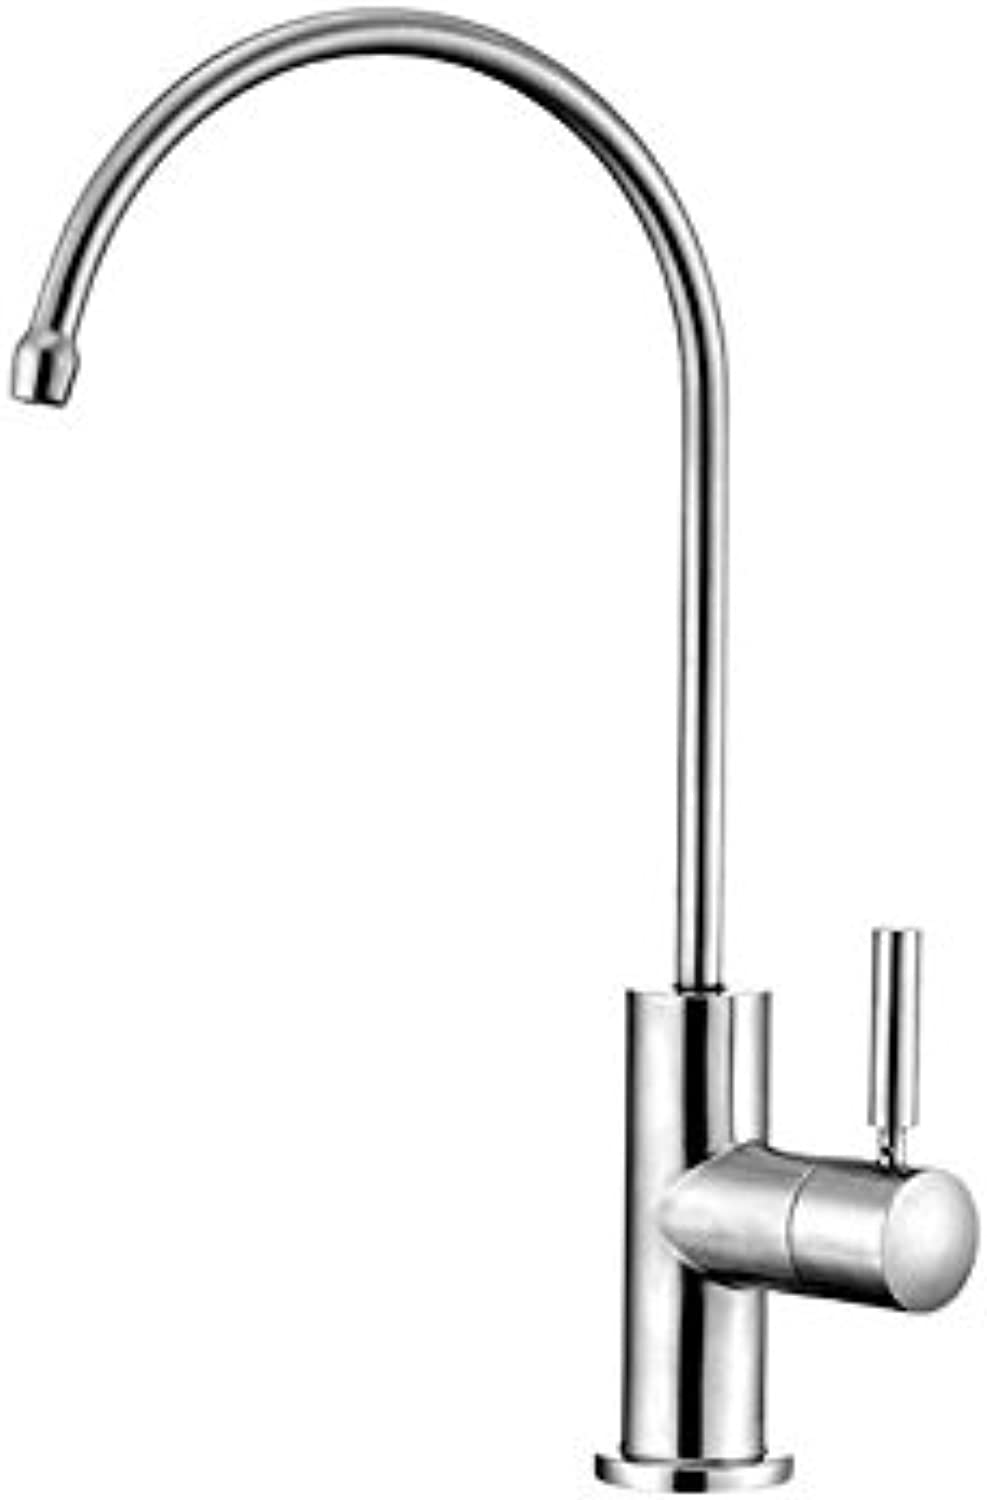 YAWEDA Kitchen Faucet, Sink, Water Purifier, Faucet, Food Grade Sus304 Stainless Steel, Lead-Free Tap, redary Wire Drawing Tap